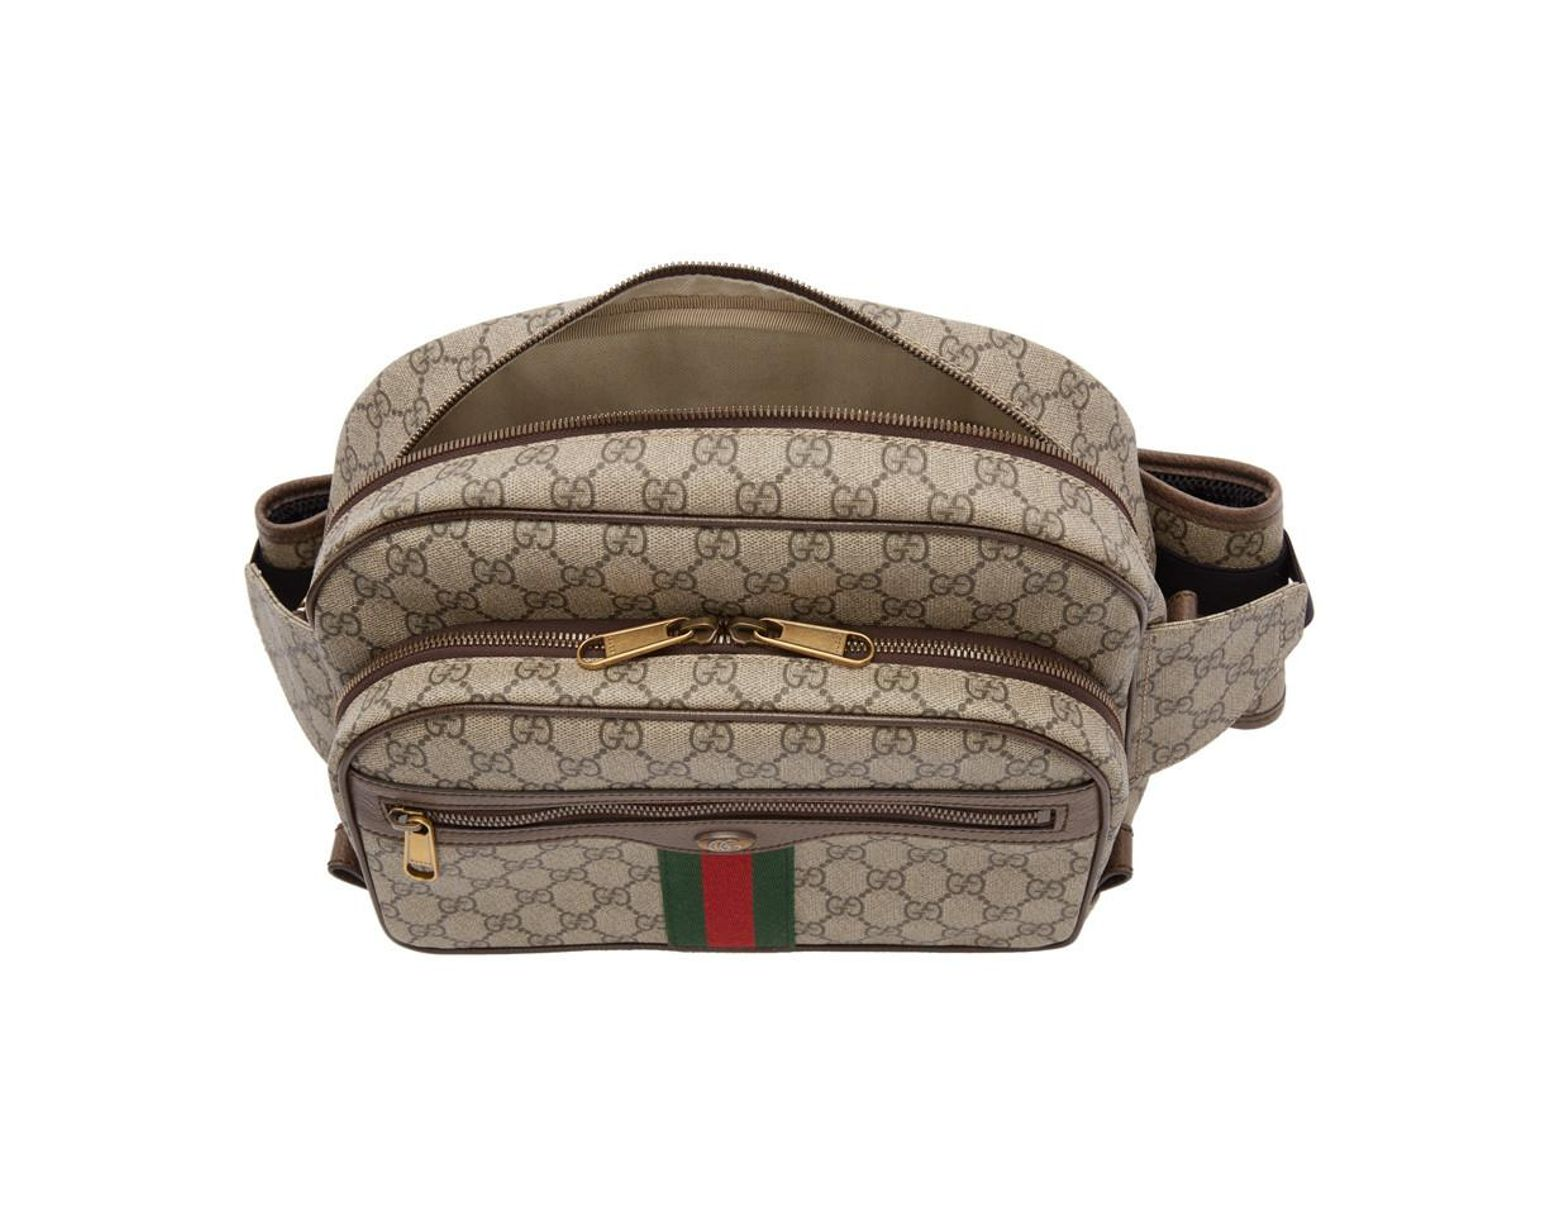 bb998031370 Lyst - Gucci Brown GG Supreme Ophidia Belt Bag in Natural for Men